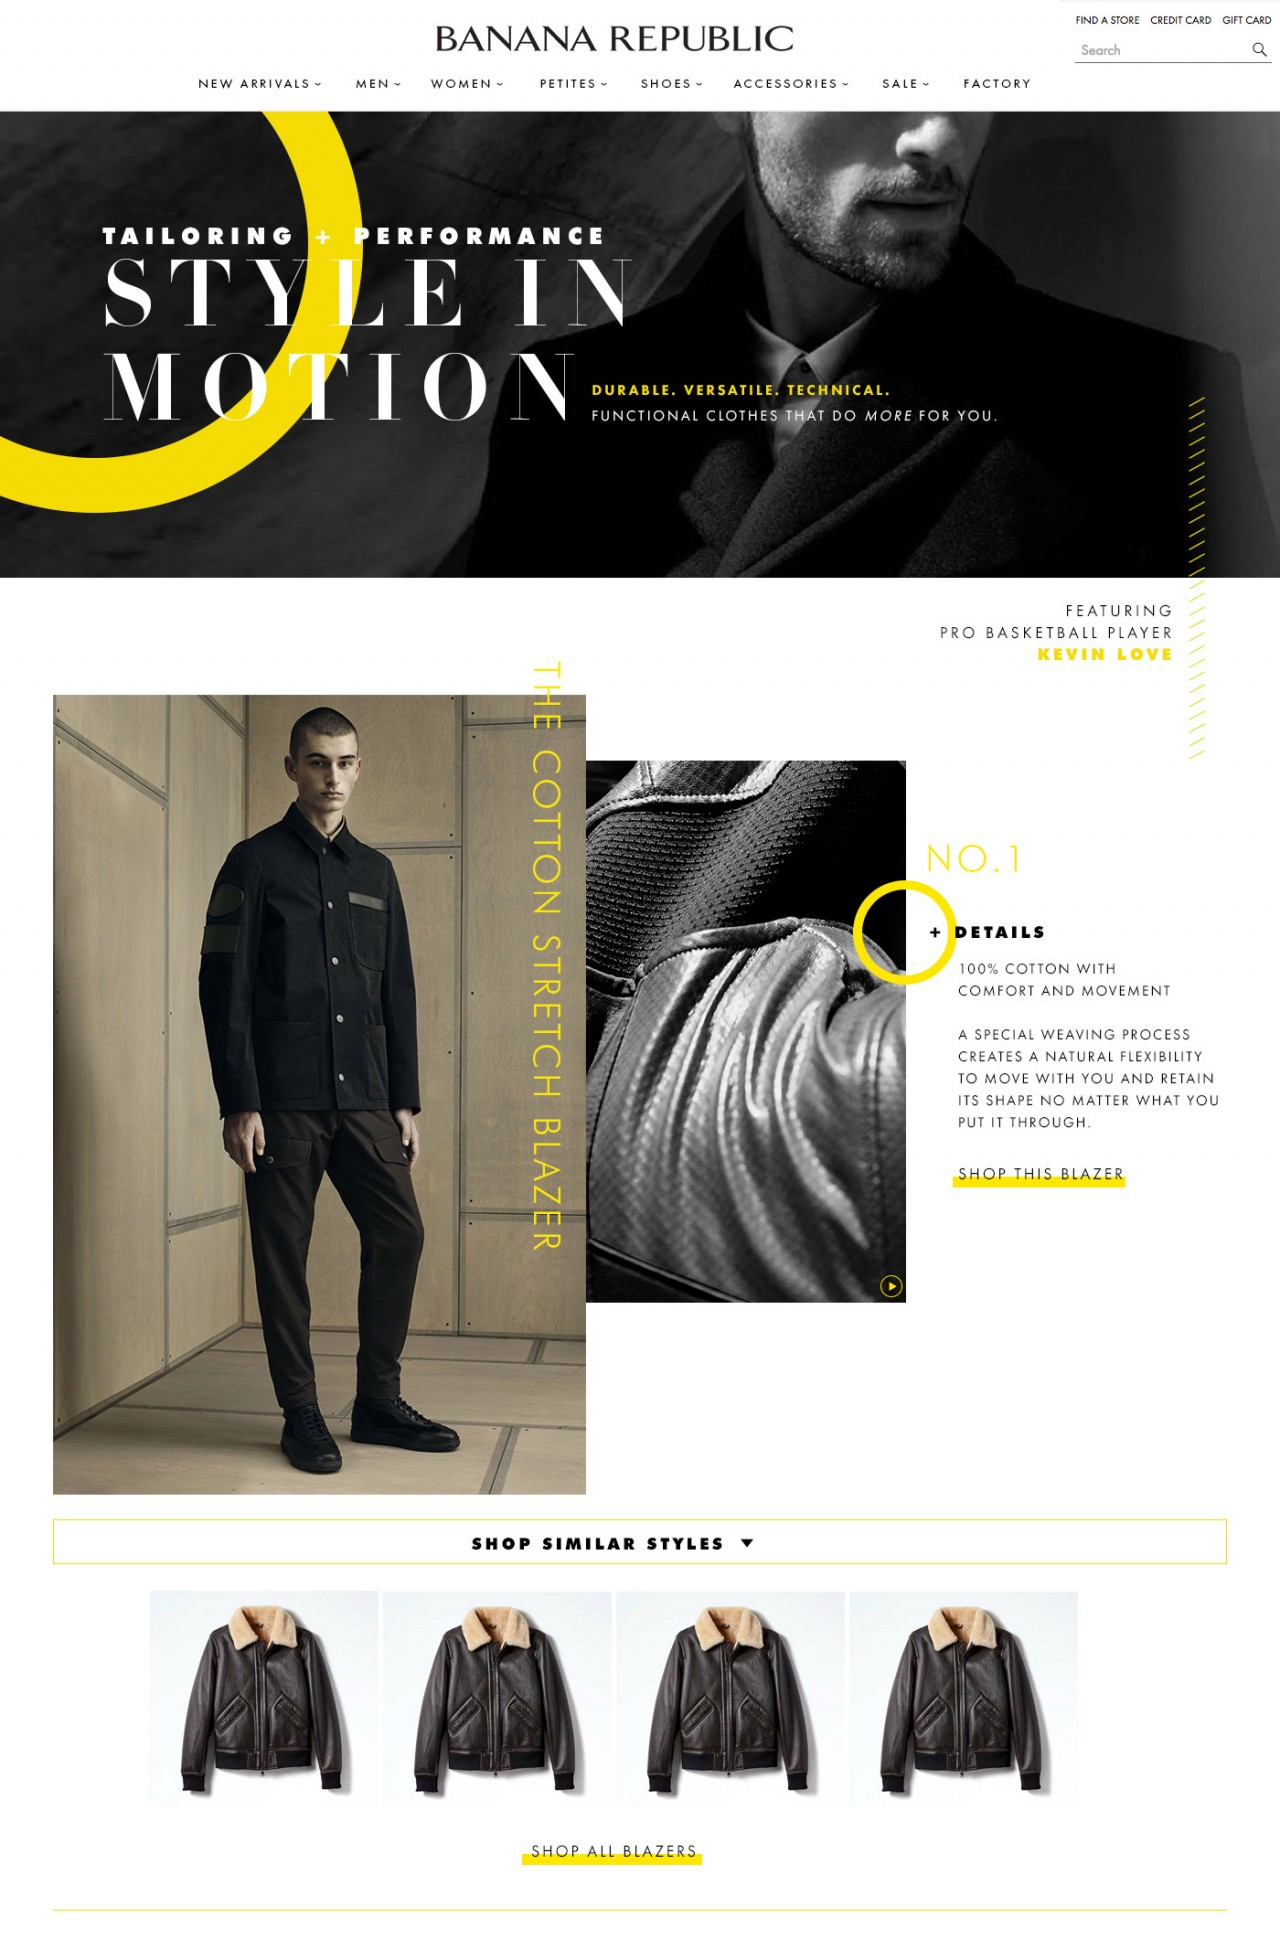 ALEXANDER ABRIAM — DIGITAL EDITORIAL:<br>STYLE IN MOTION